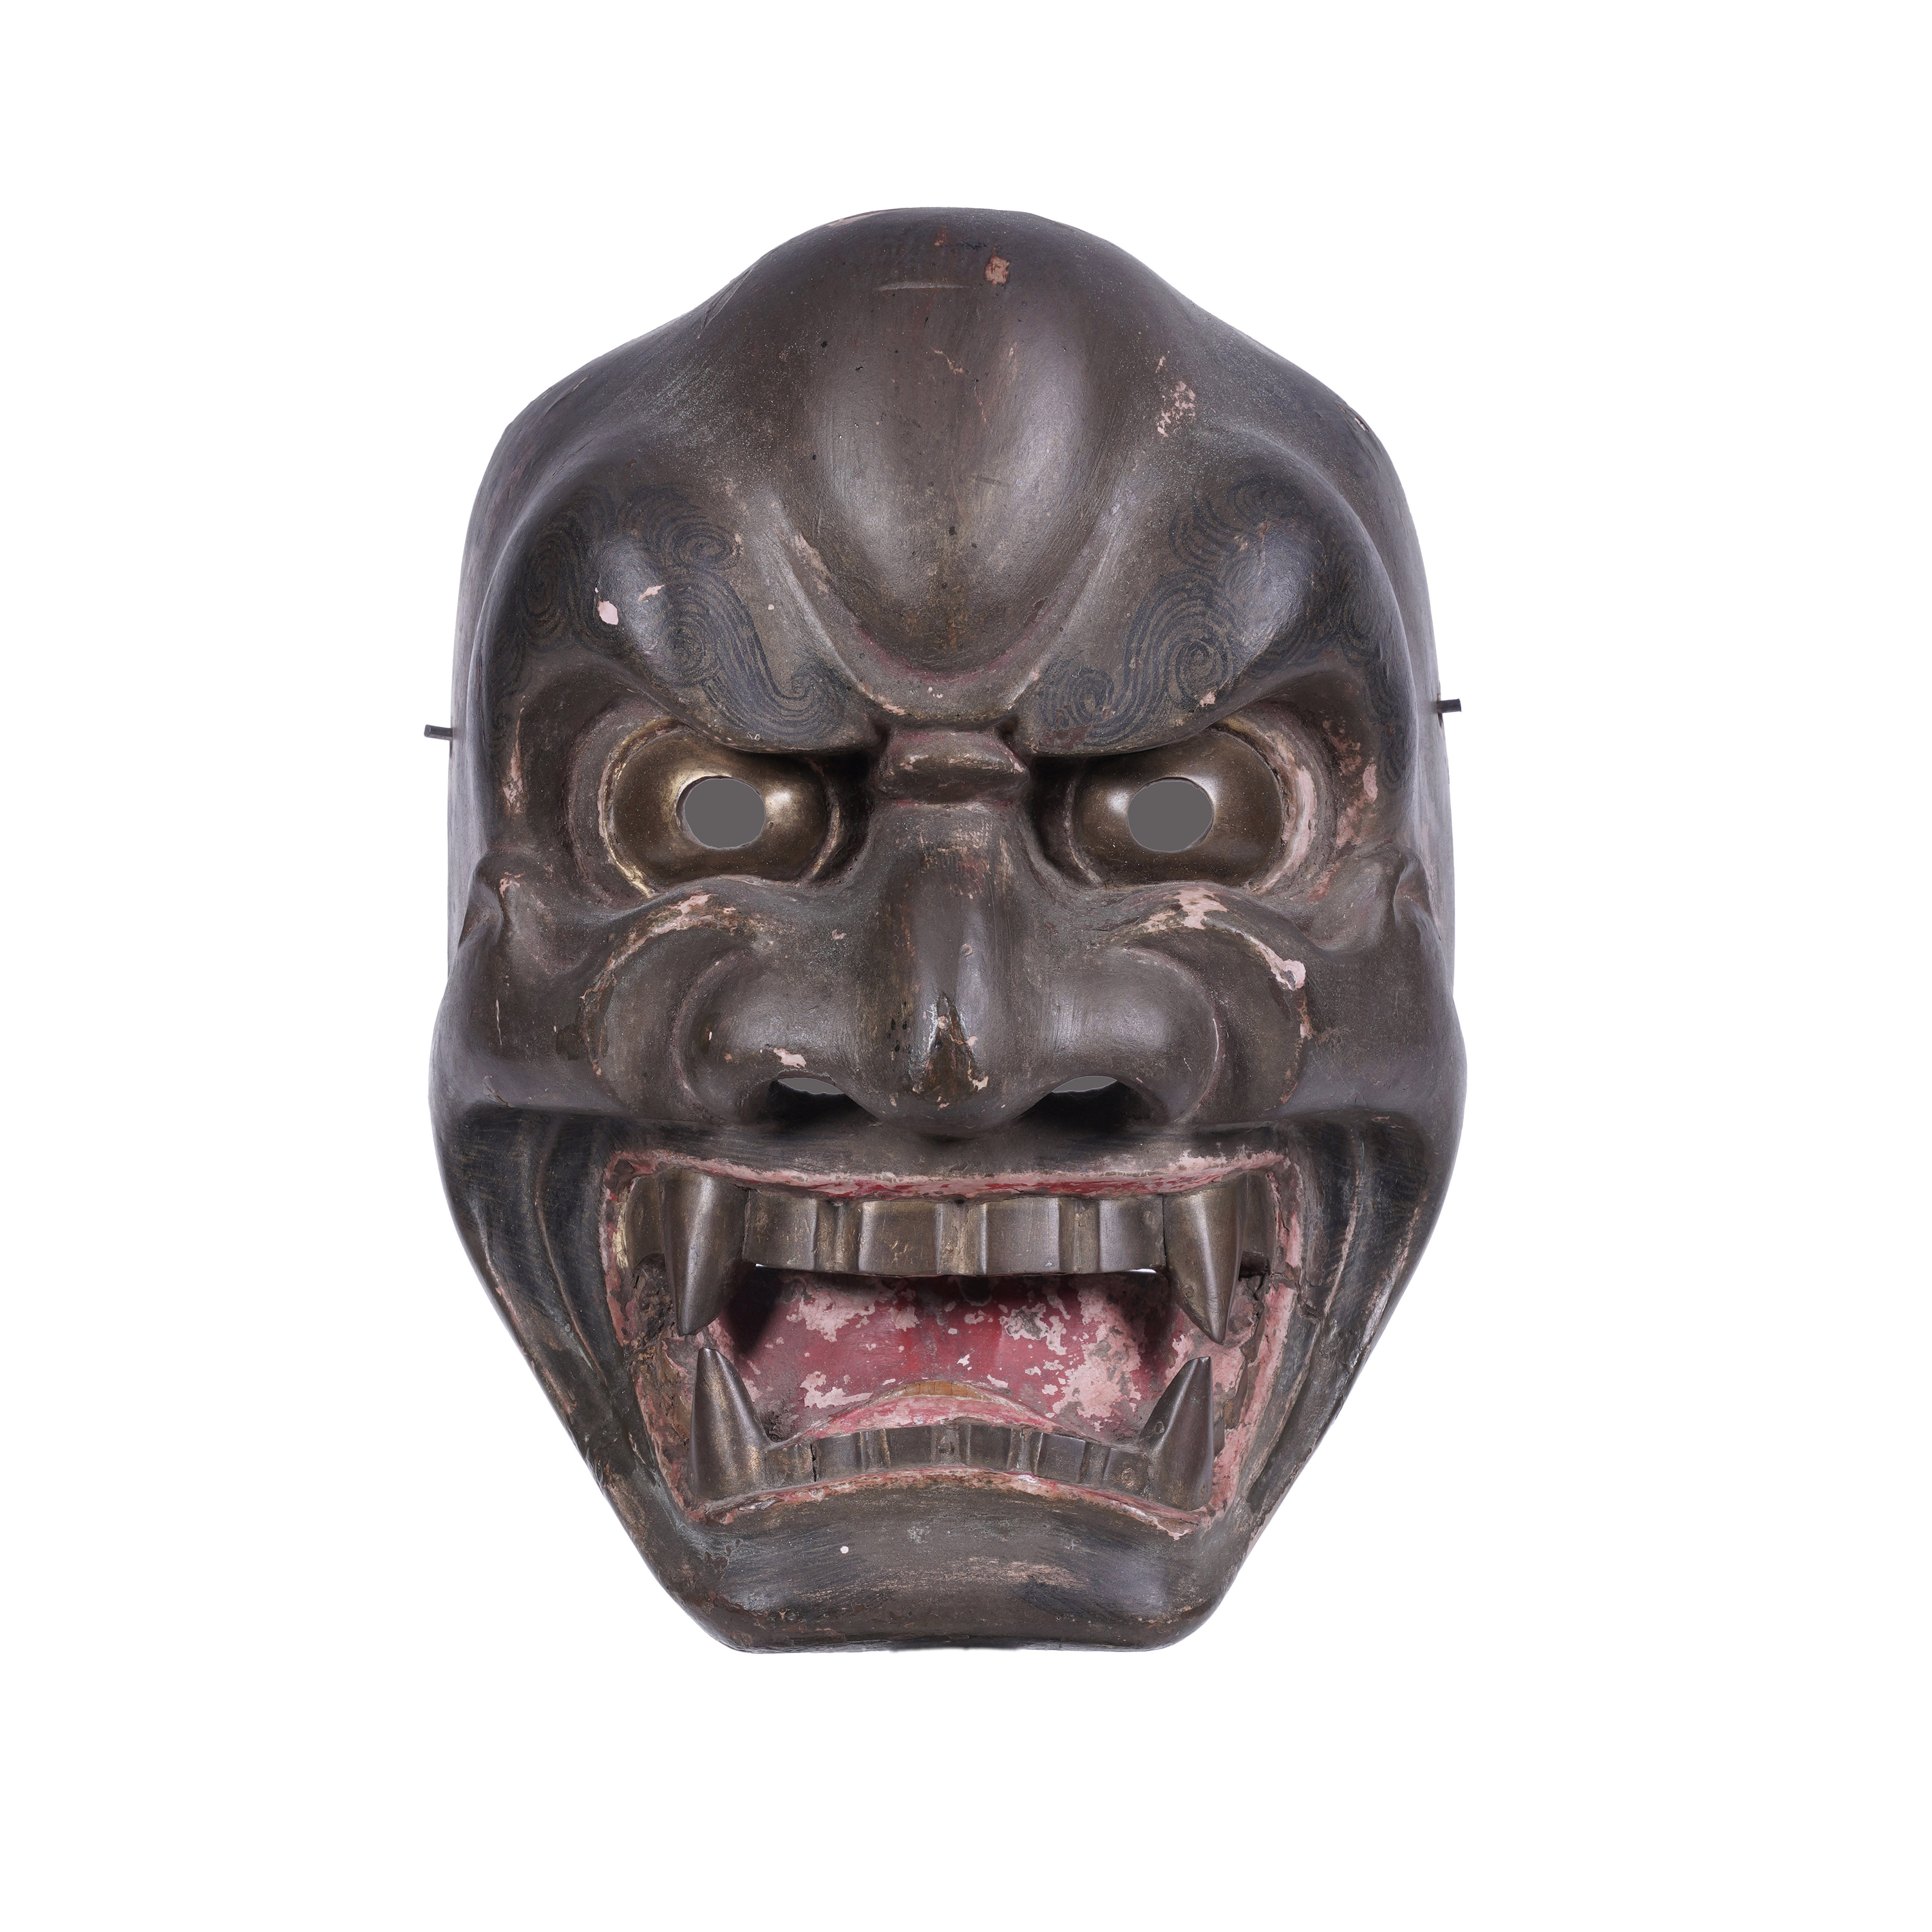 .A LACQUERED WOODEN MASK Japan, 19th century H: 21 cm - w: 15,5 cm Provenance: A curated selection